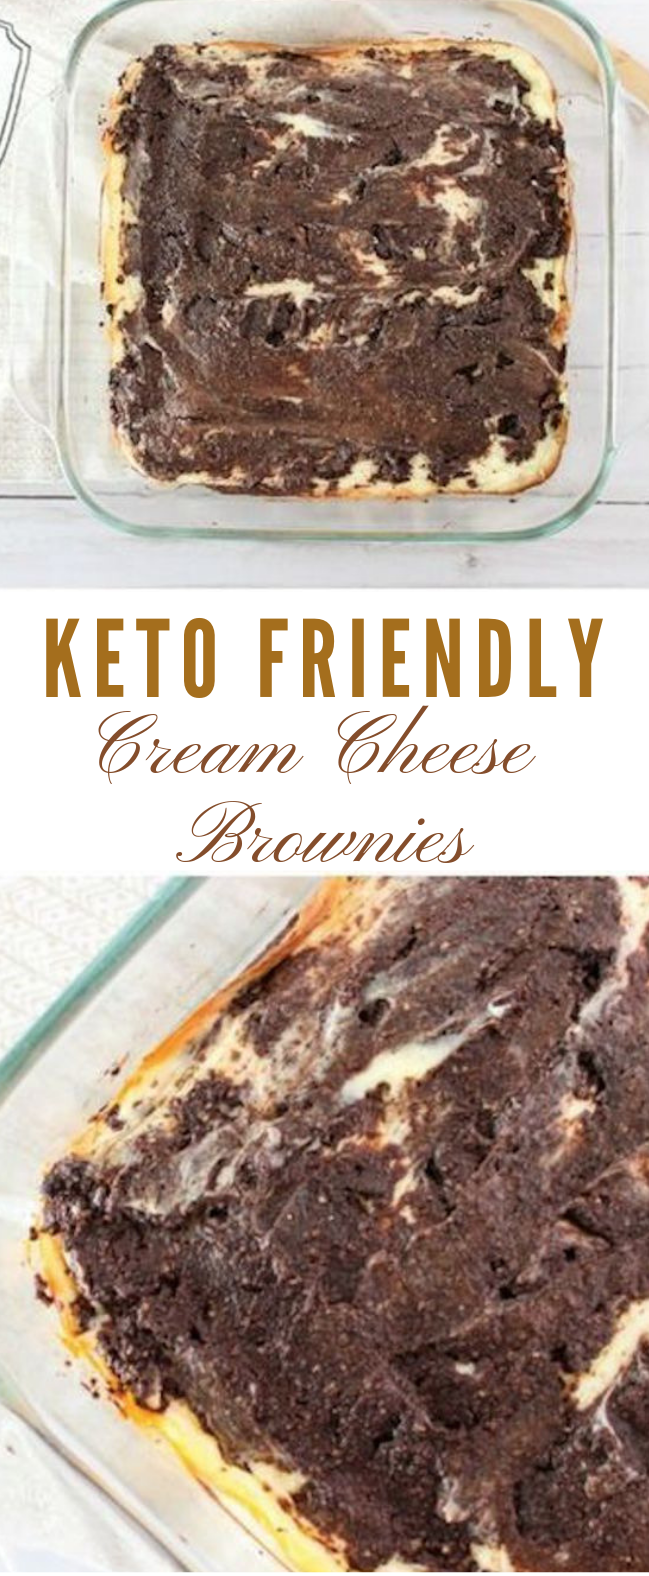 Keto Cream Cheese Brownies Recipe #cakes #keto